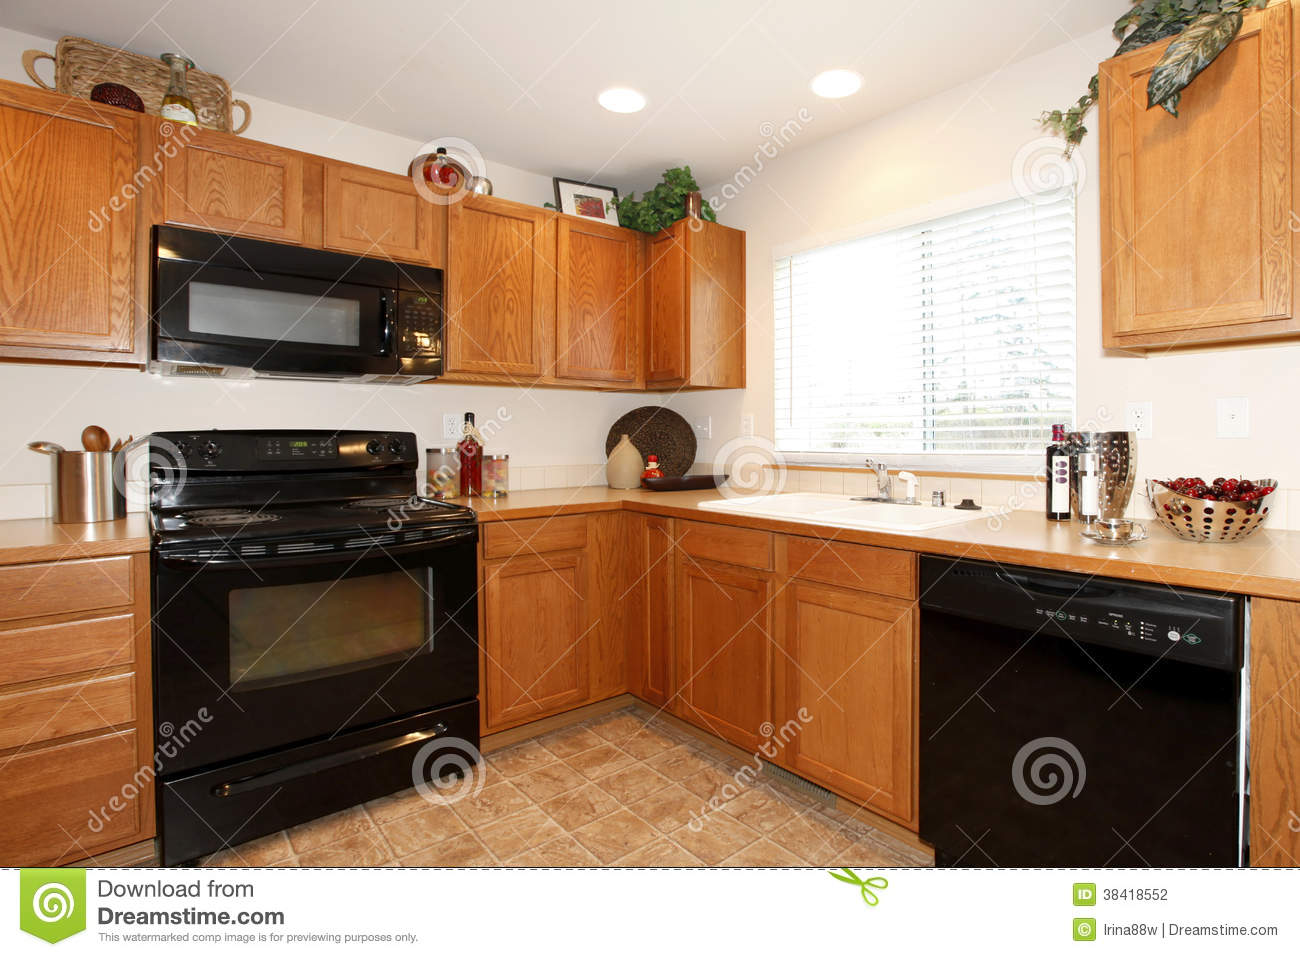 Brown kitchen cabinets with black appliances stock for Brown kitchen cabinets with black granite